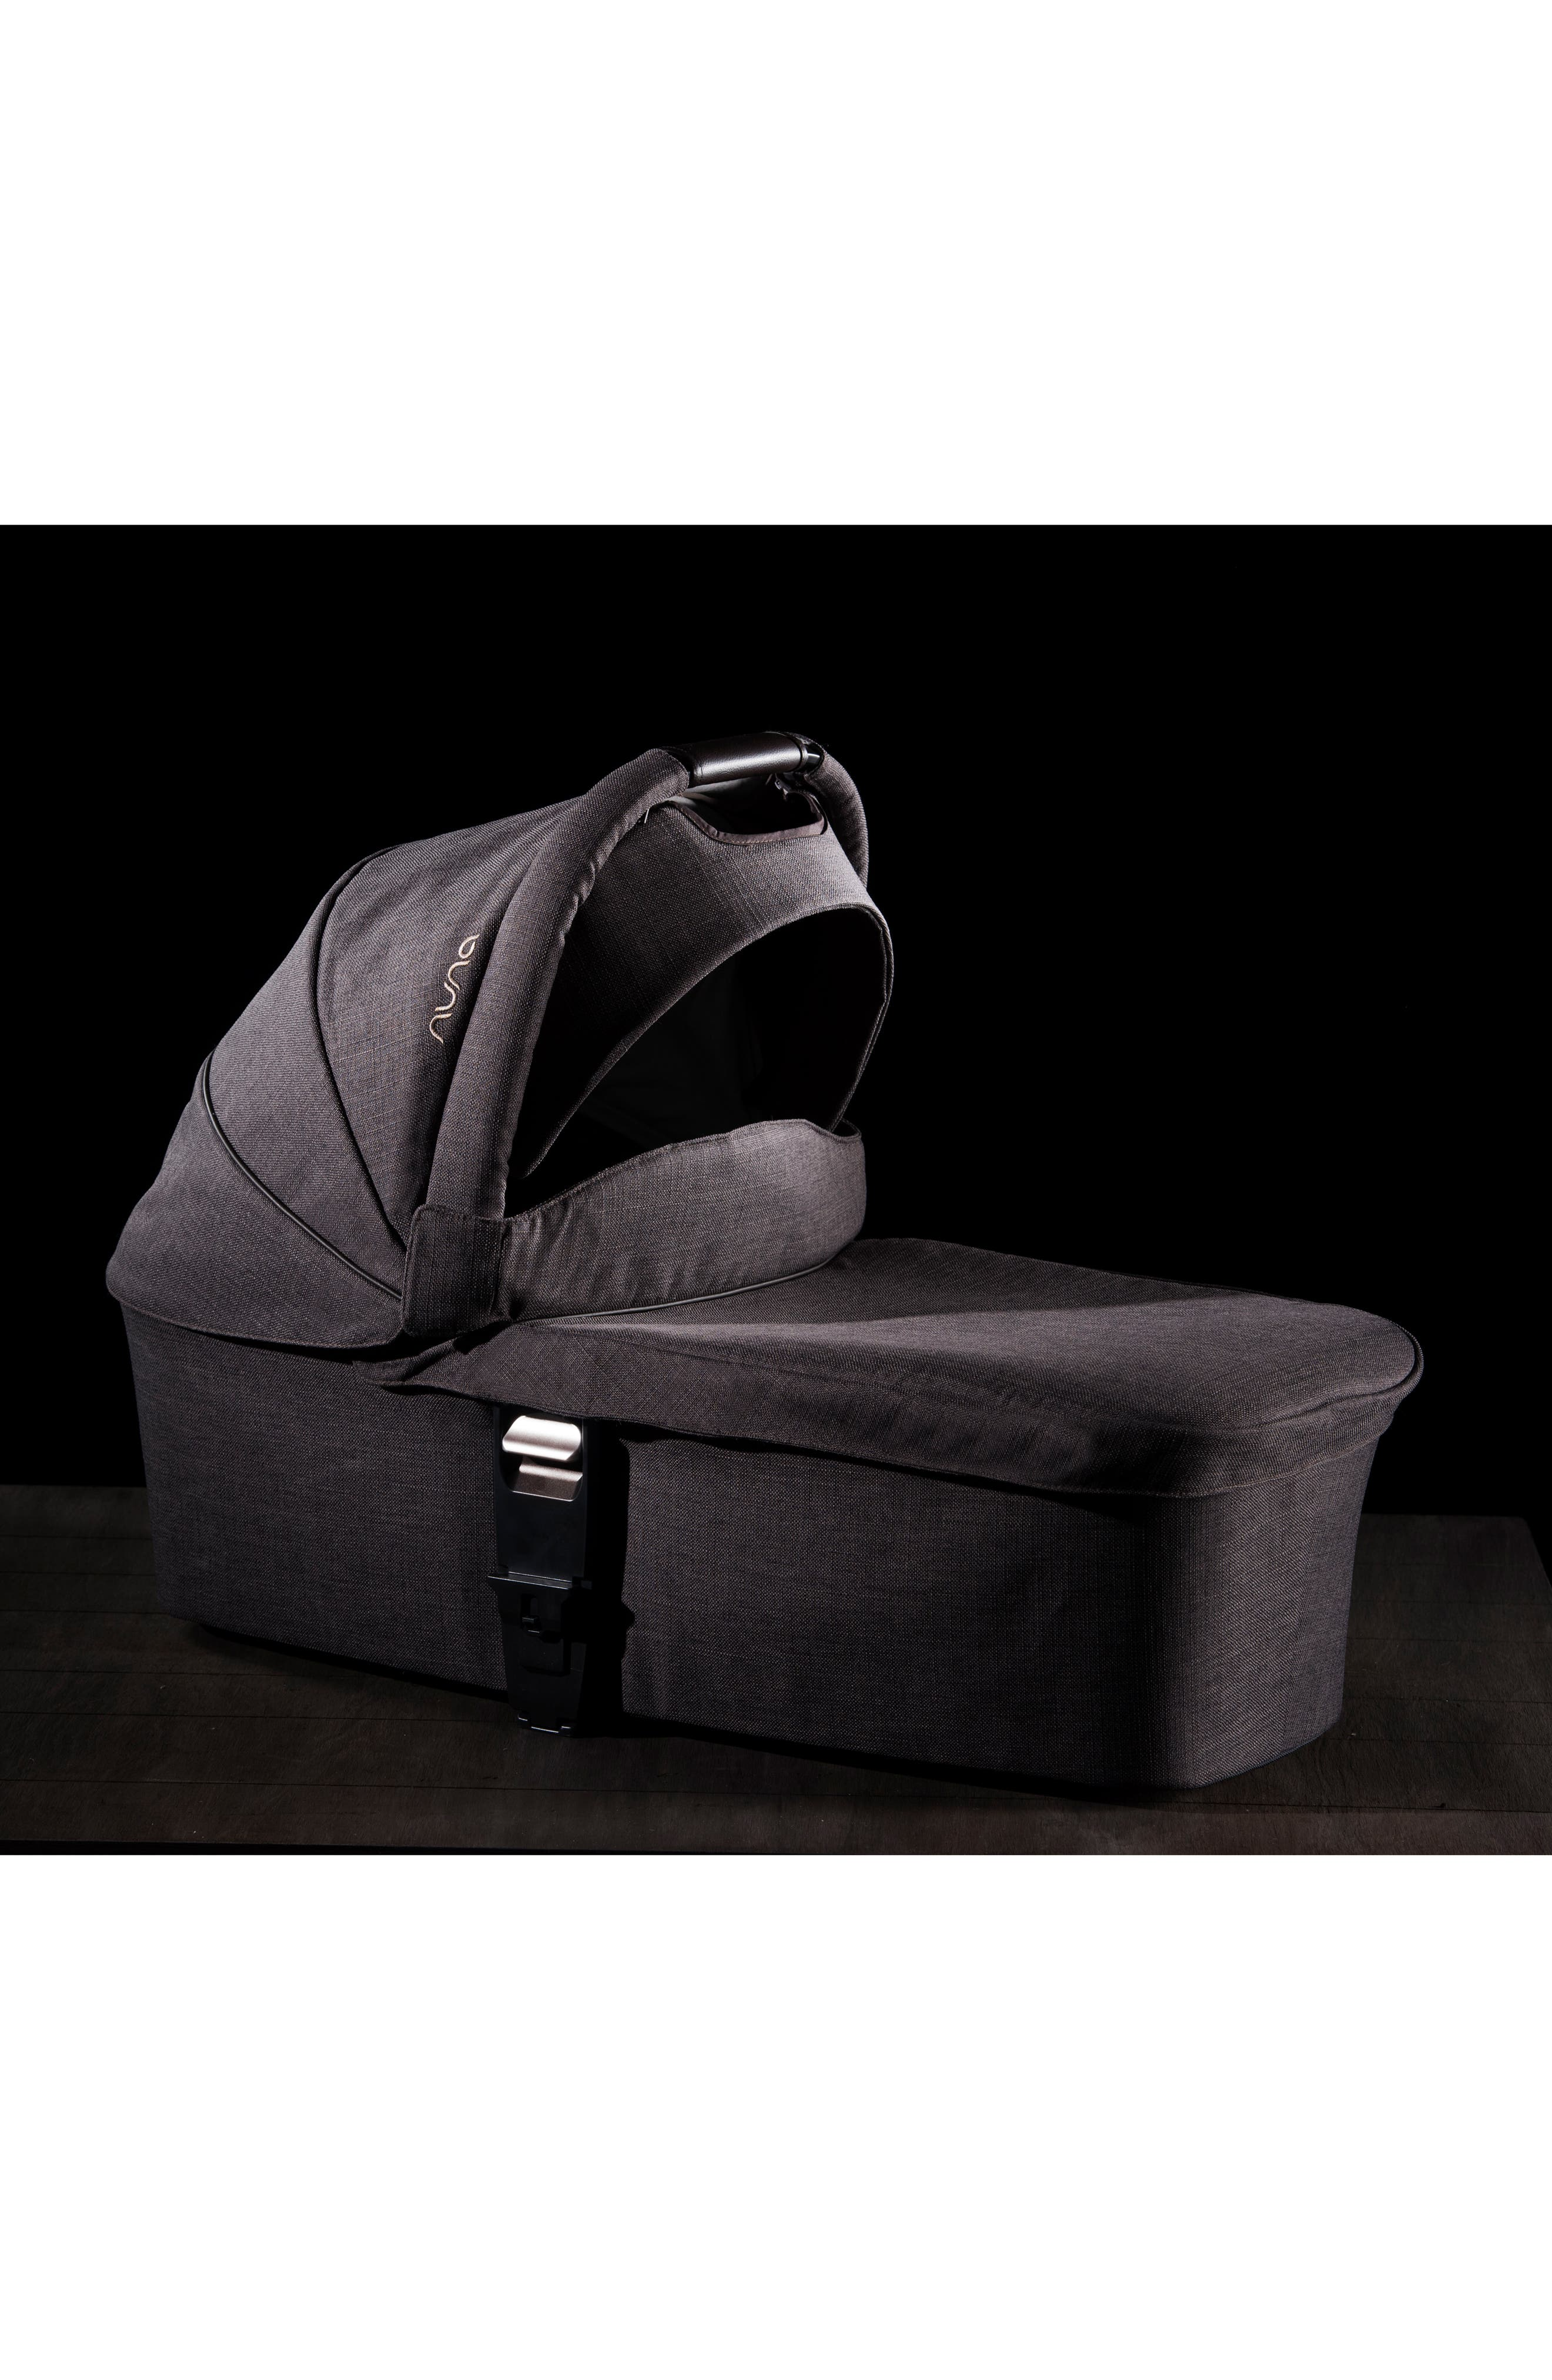 MIXX<sup>™</sup> Suited Collection Stroller & Bassinet Set,                             Alternate thumbnail 11, color,                             001